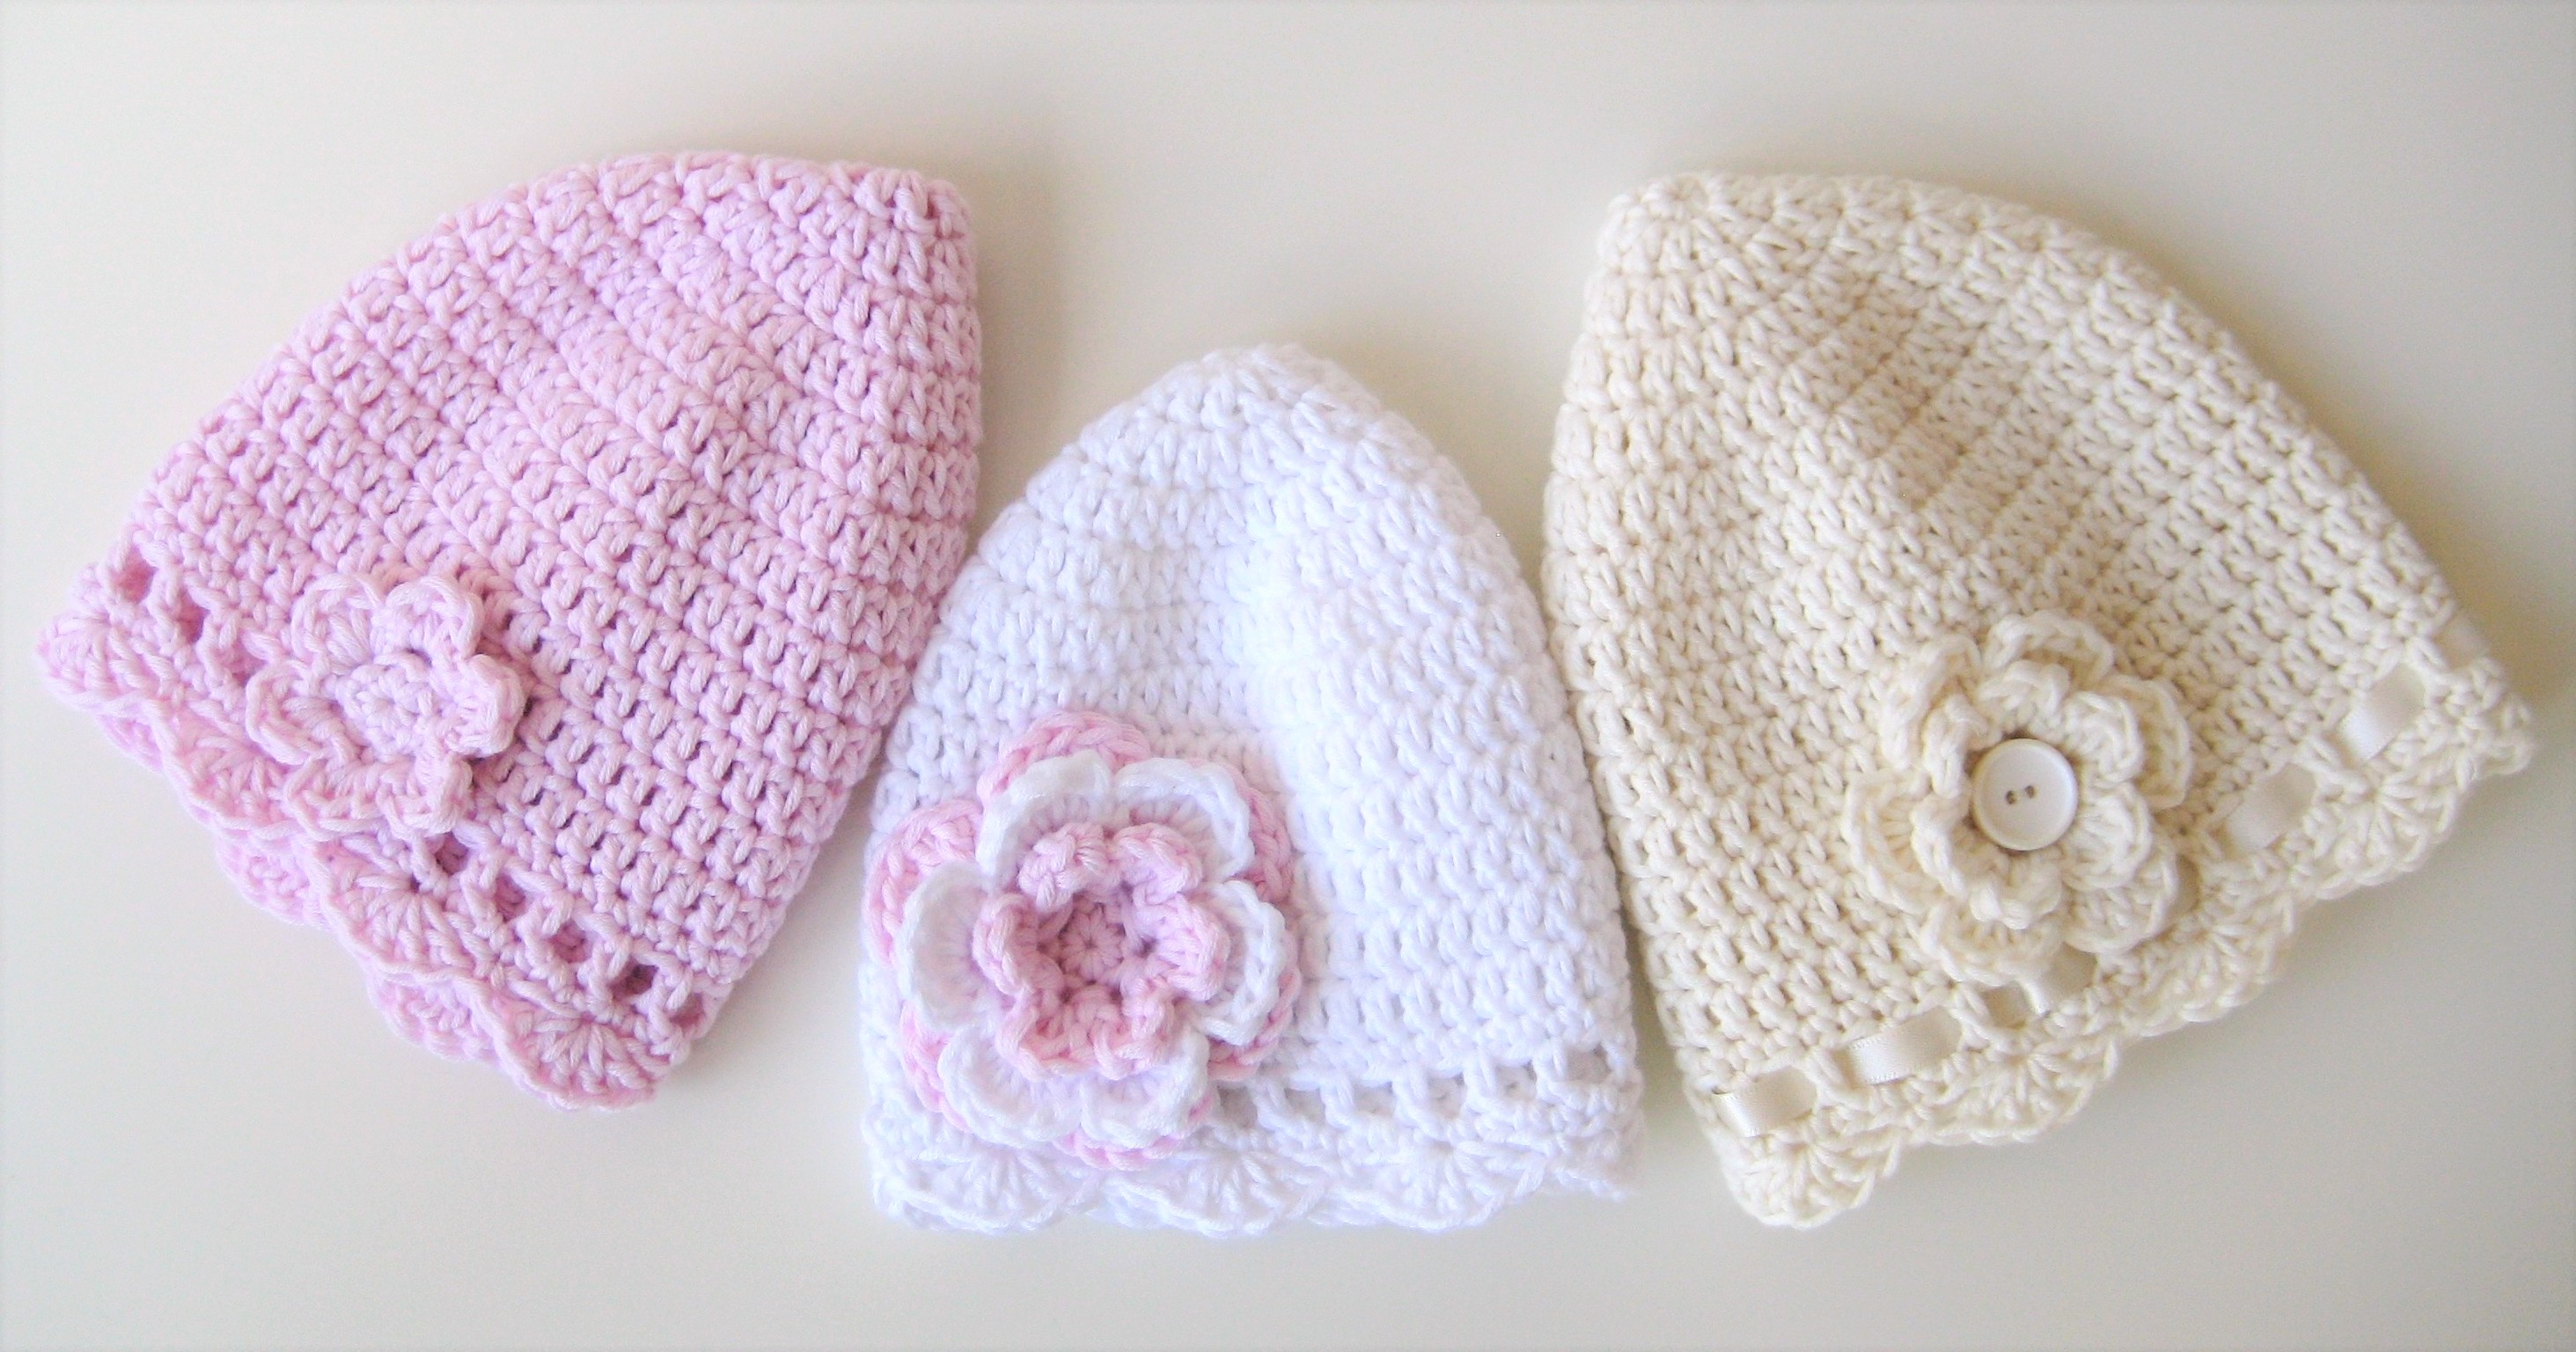 Crochet Hat, Classic Baby Hats, Pattern No1, in both UK and US crochet terms